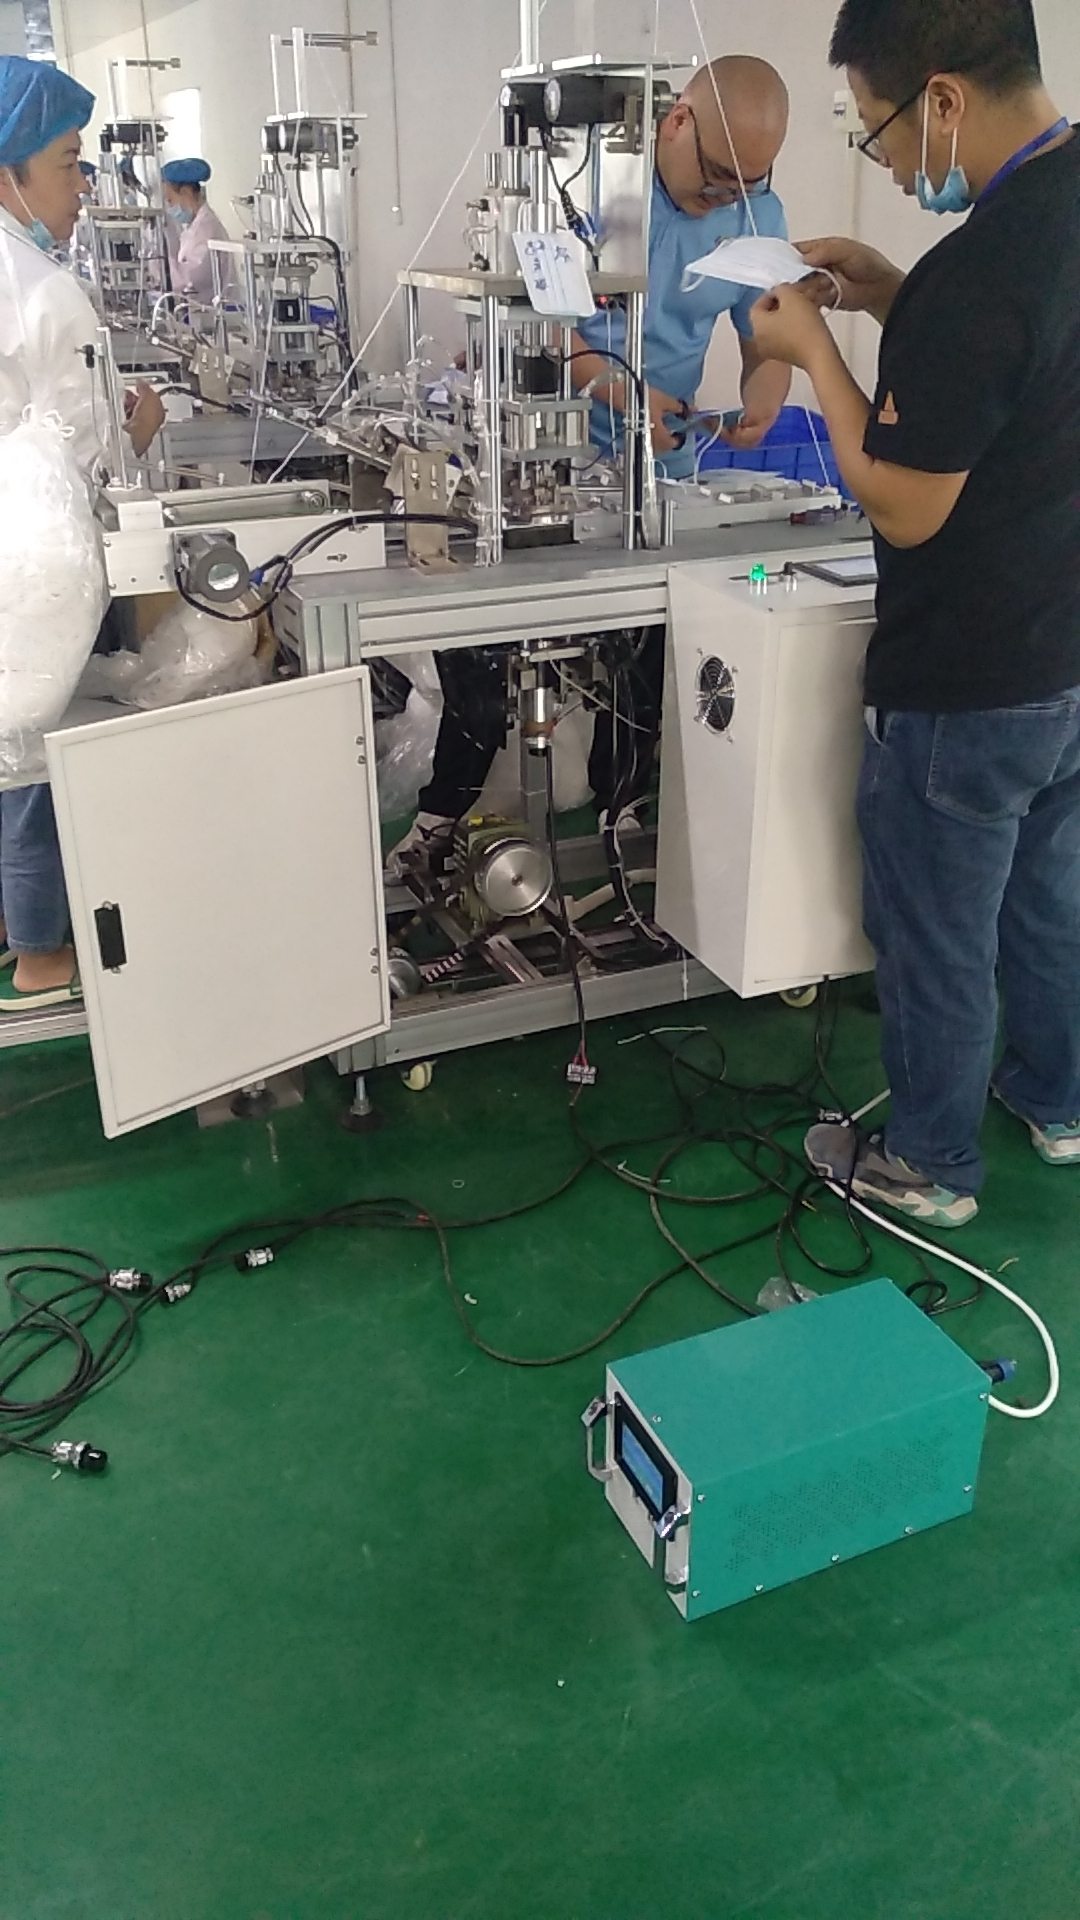 20khz 2000w Ultrasonic Welding Generator And Welding Transducer For Welding Masks